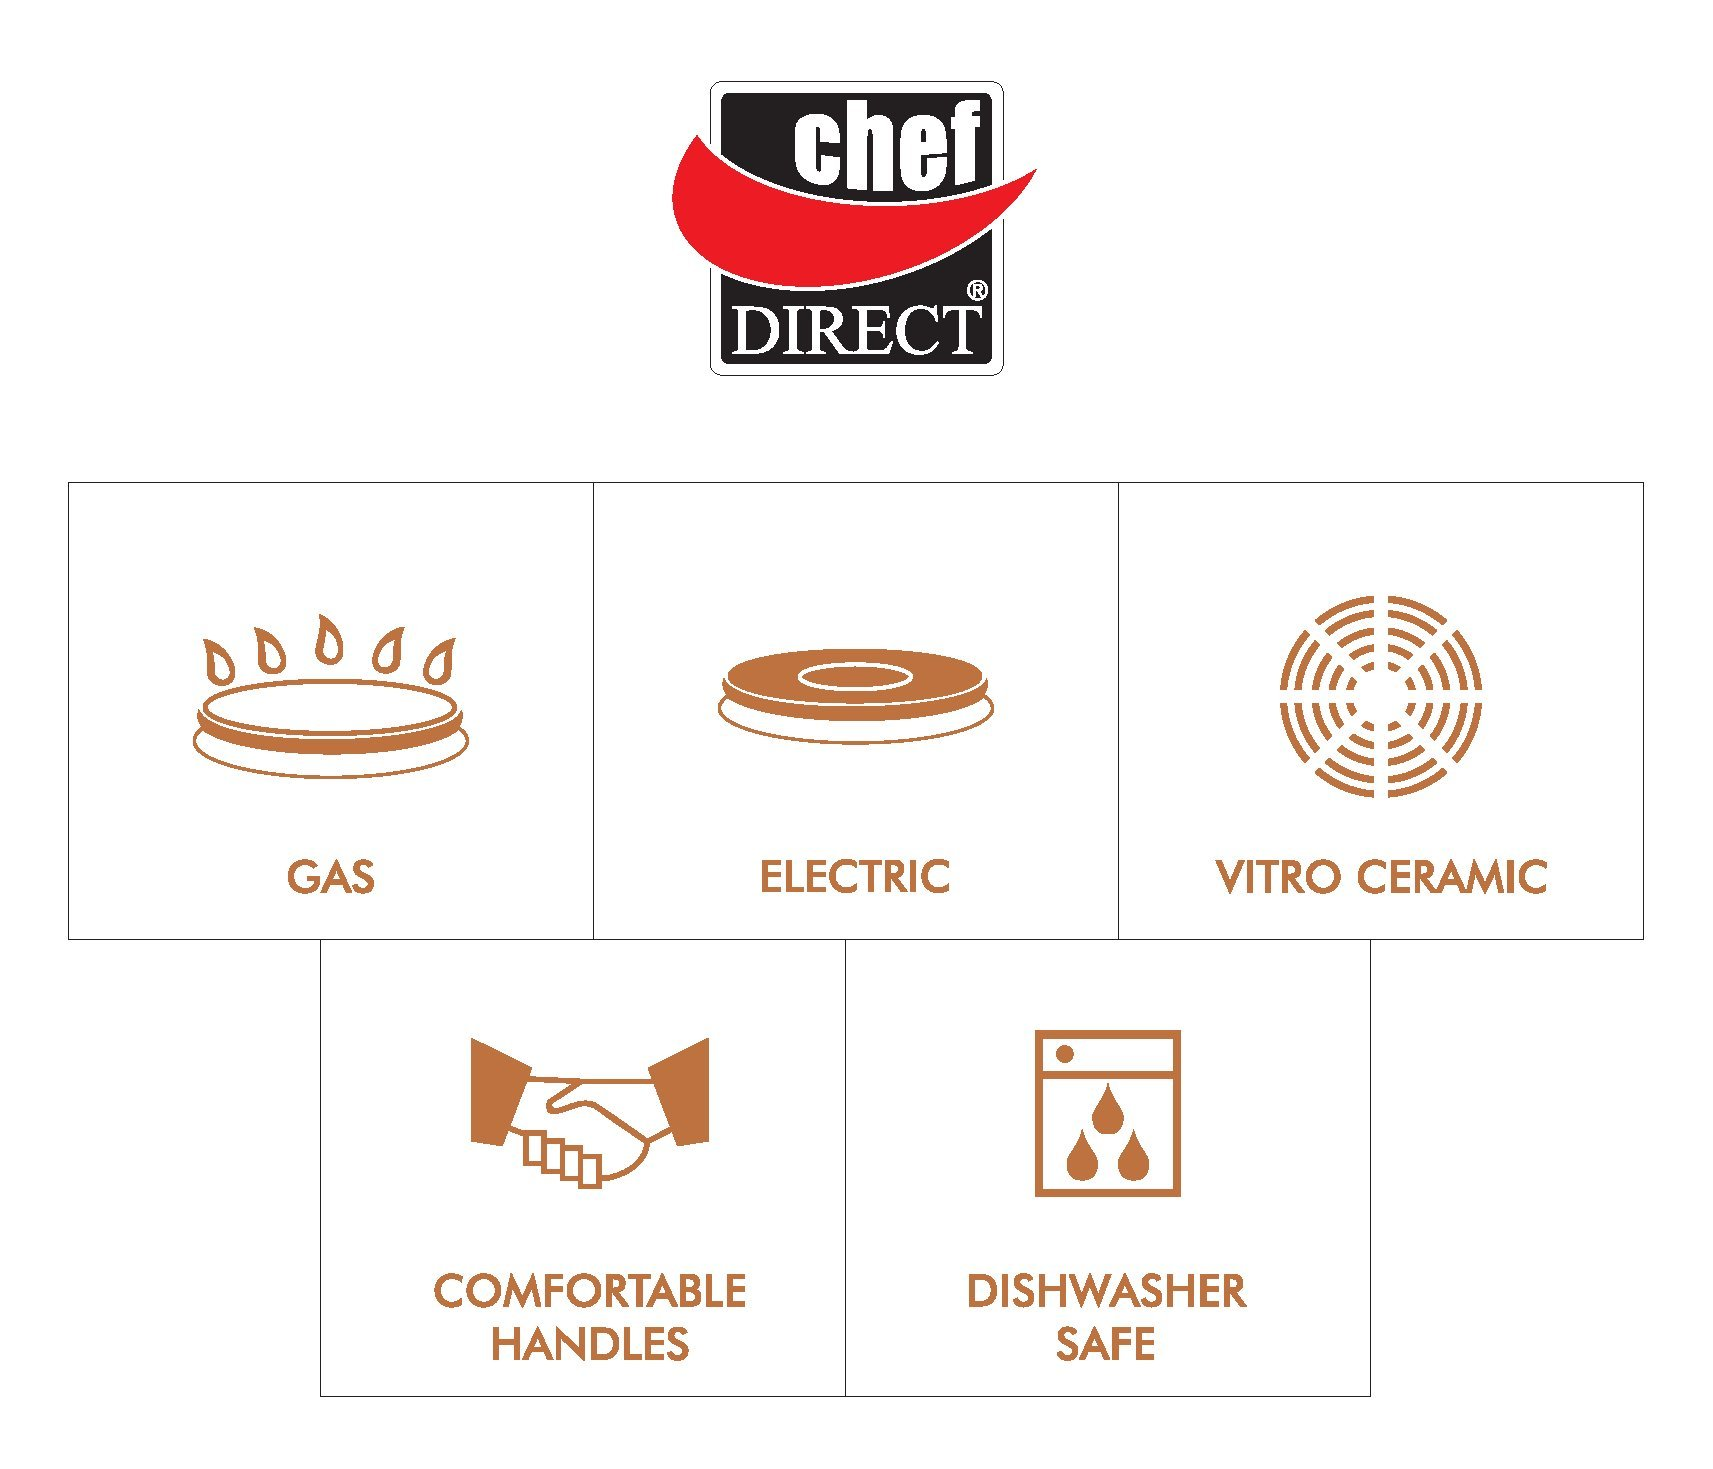 Chef Direct Stainless Steel Deep Oval Baking Dish - Length 39 Cm X Height 5.0 Cm // Chef Direct // Bandeja Oval Honda En Acero Inoxidable